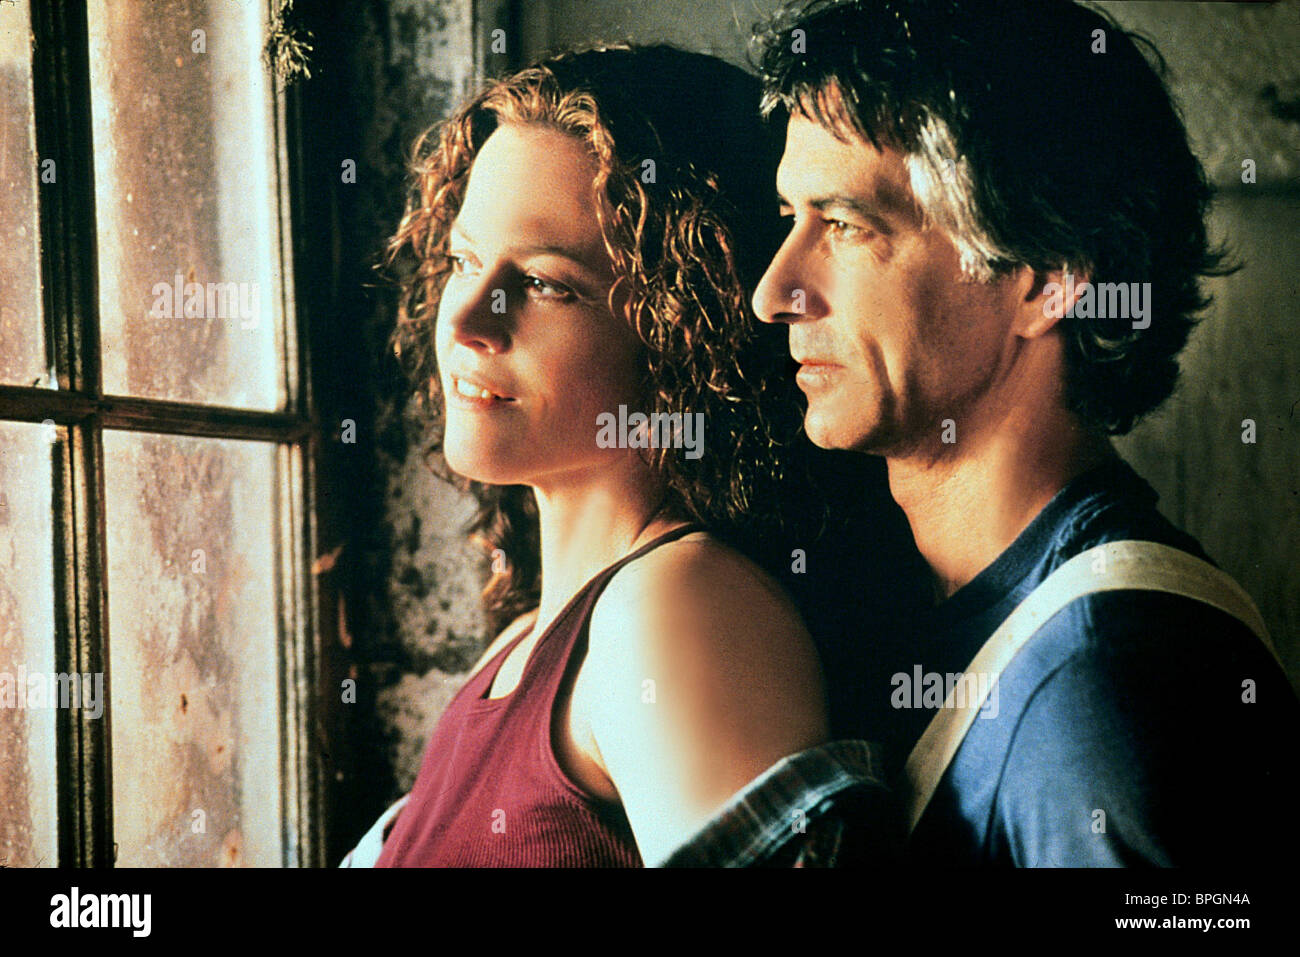 SIGOURNEY WEAVER DAVID STRATHAIRN A MAP OF THE WORLD (1999 ... on huge wall maps of the world, sigourney weaver deal of the century, sigourney weaver the tv set, julianne moore movie a map of the world,